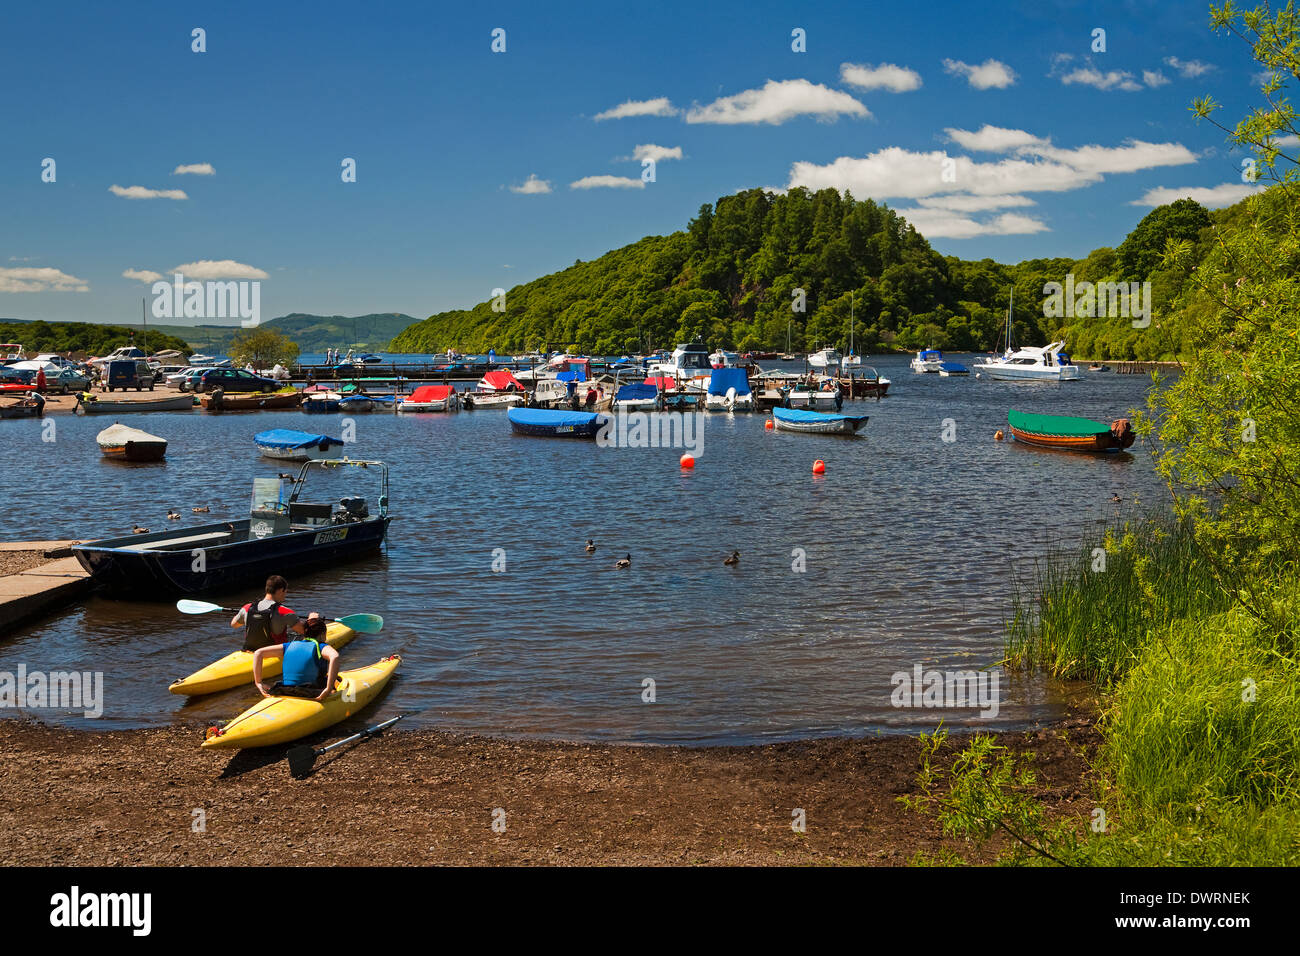 Kayaking at Balmaha Boatyard on Loch Lomond. Inchcailloch is in the background. - Stock Image